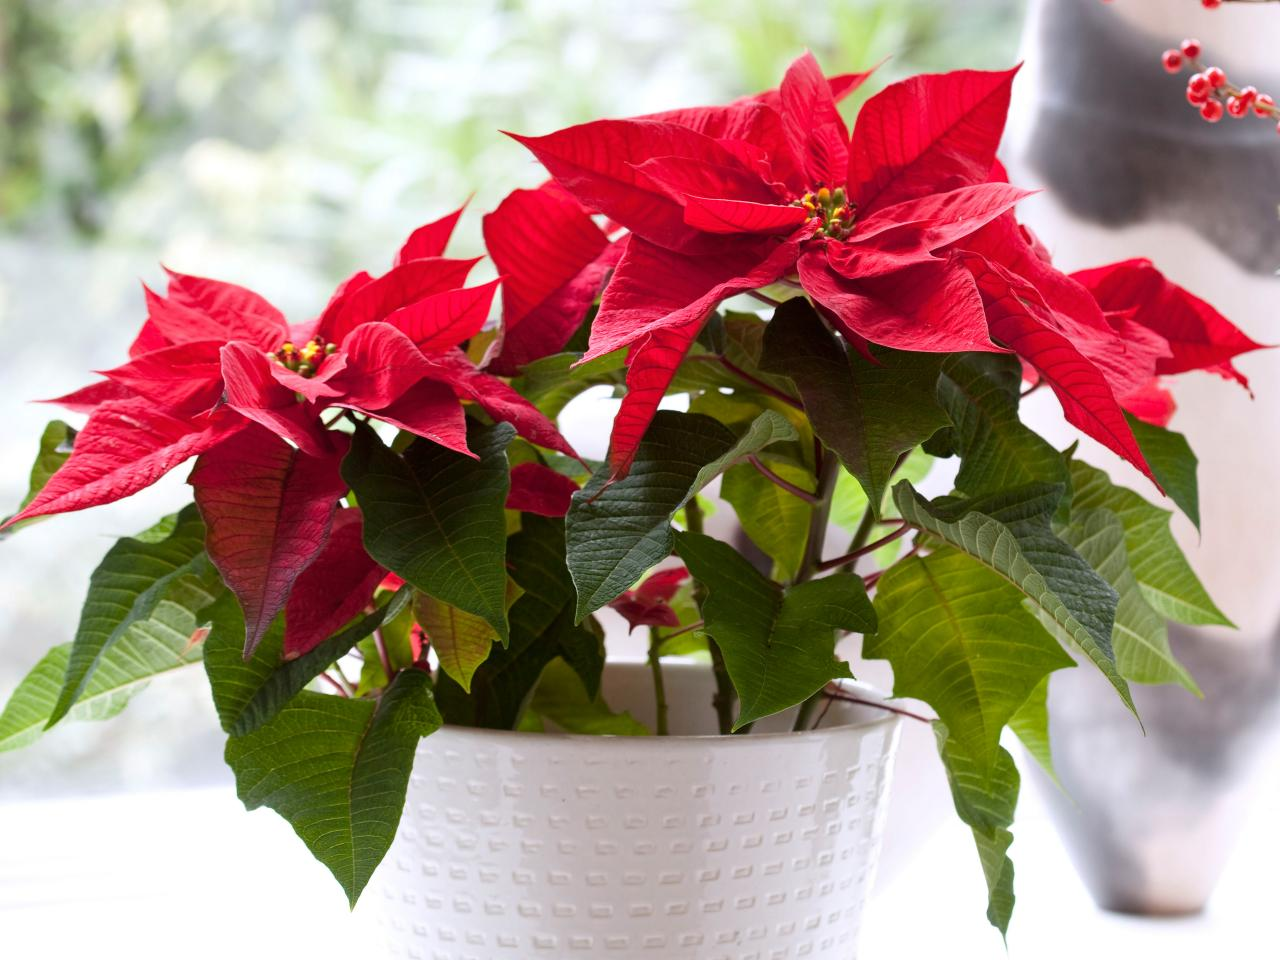 poinsettia not dangerous to animals or pets